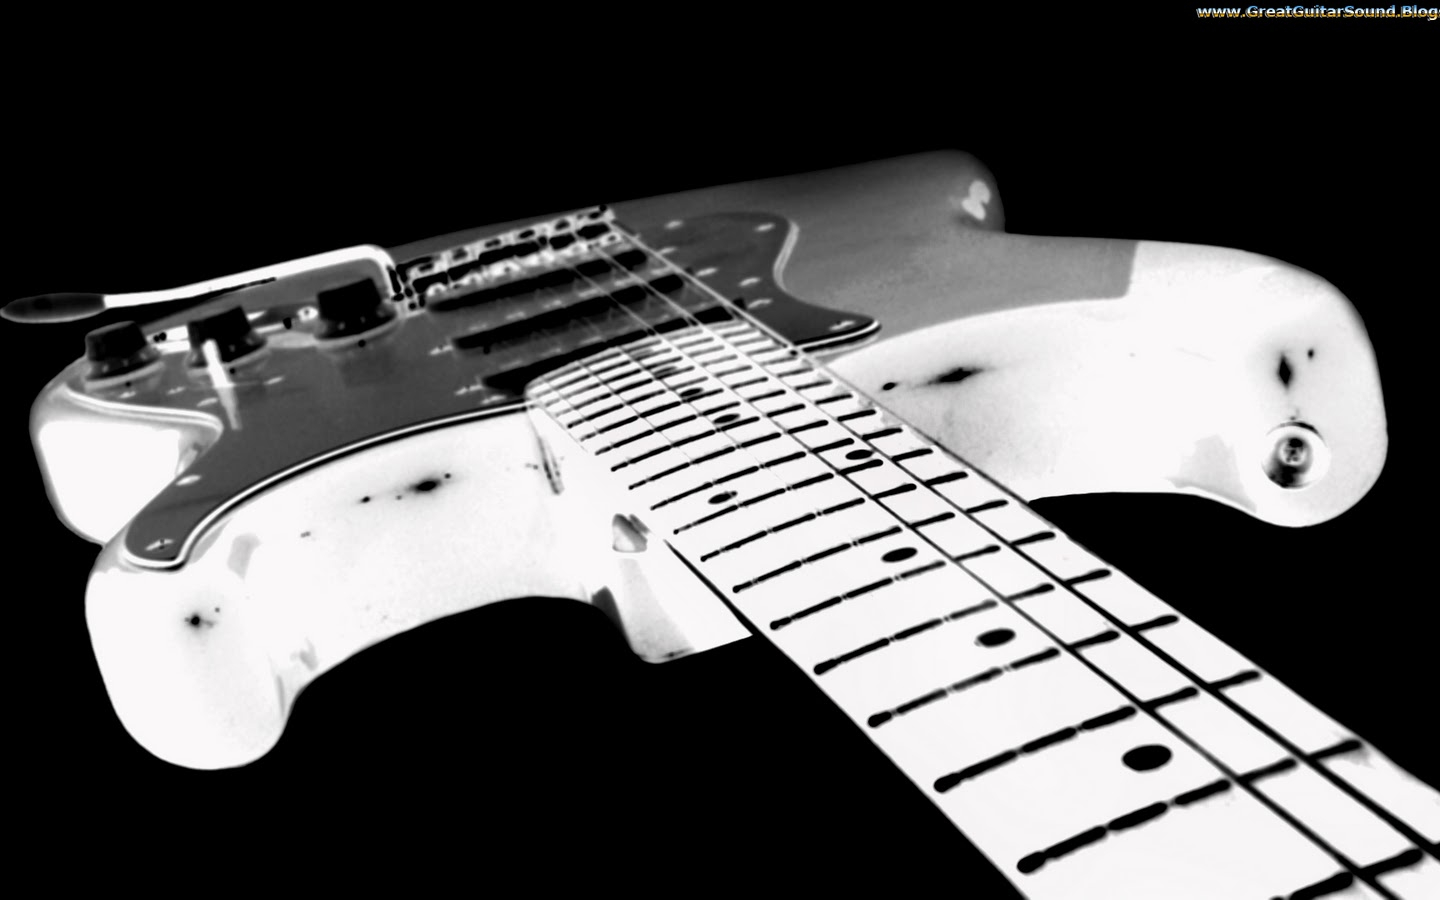 Free Download Guitar Wallpaper Black And White Fender Stratocaster Electric Guitar 1600x900 For Your Desktop Mobile Tablet Explore 76 Fender Stratocaster Wallpaper Fender Stratocaster Wallpaper Hd Fender Custom Shop